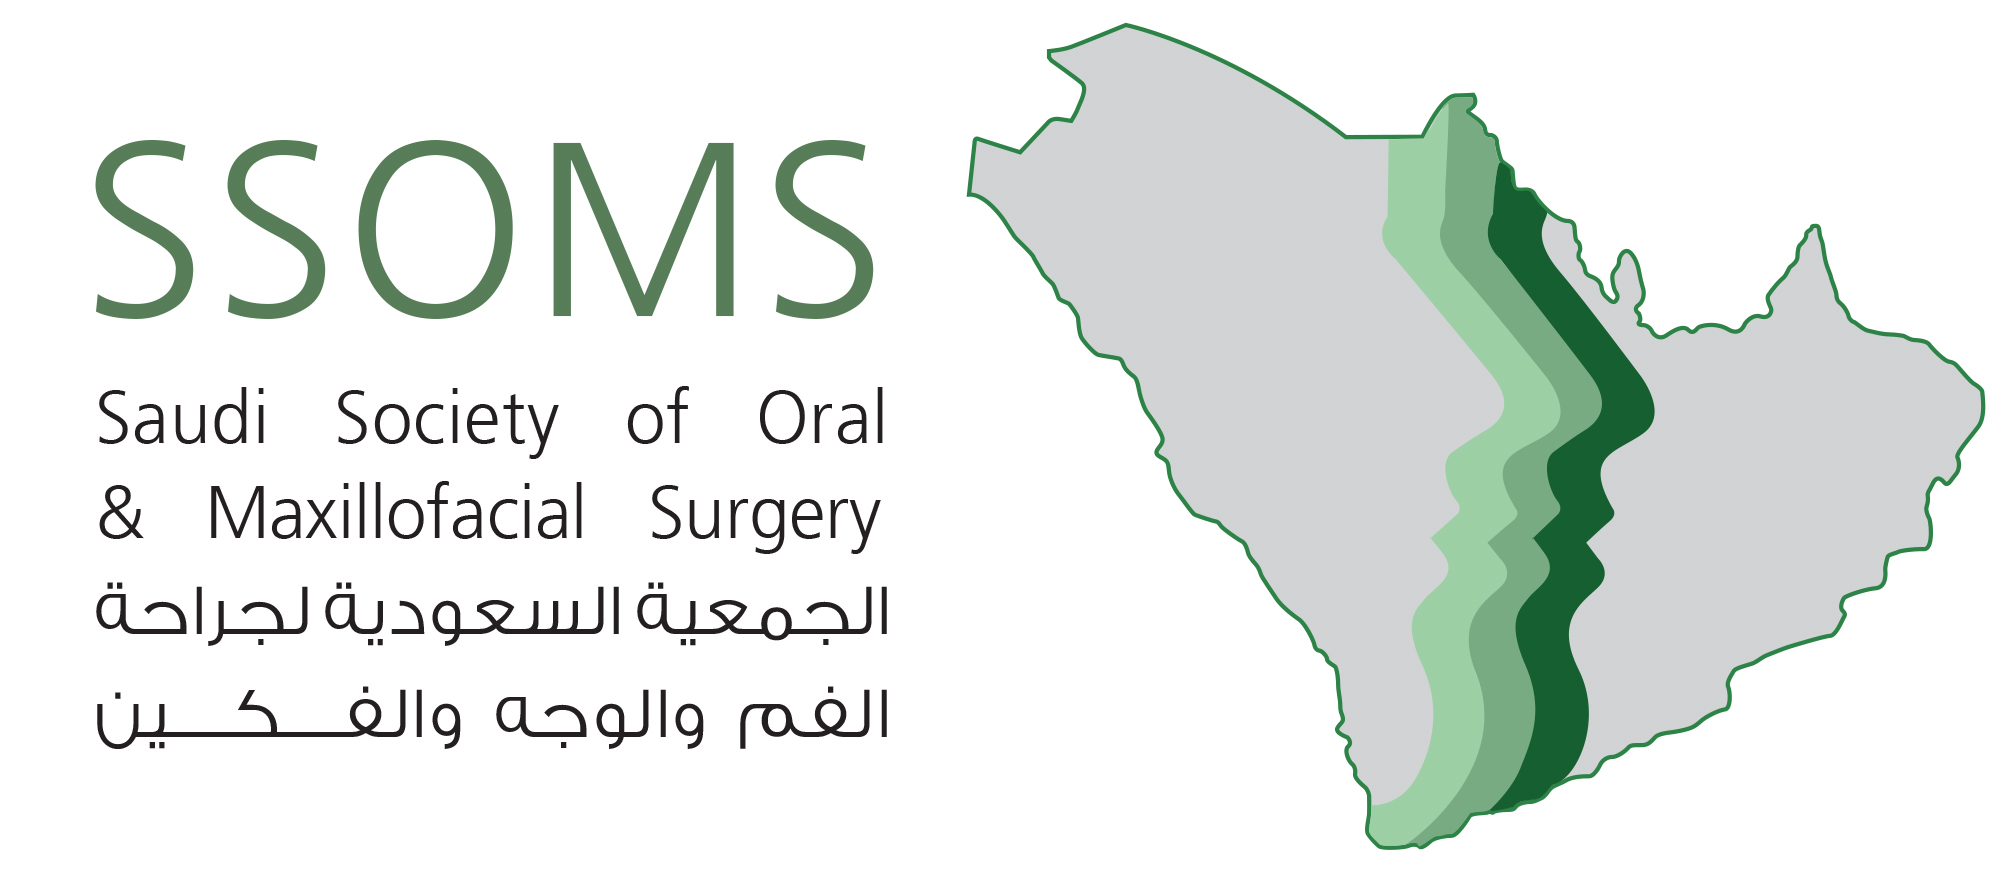 Saudi Society of Oral and Maxillofacial Surgery